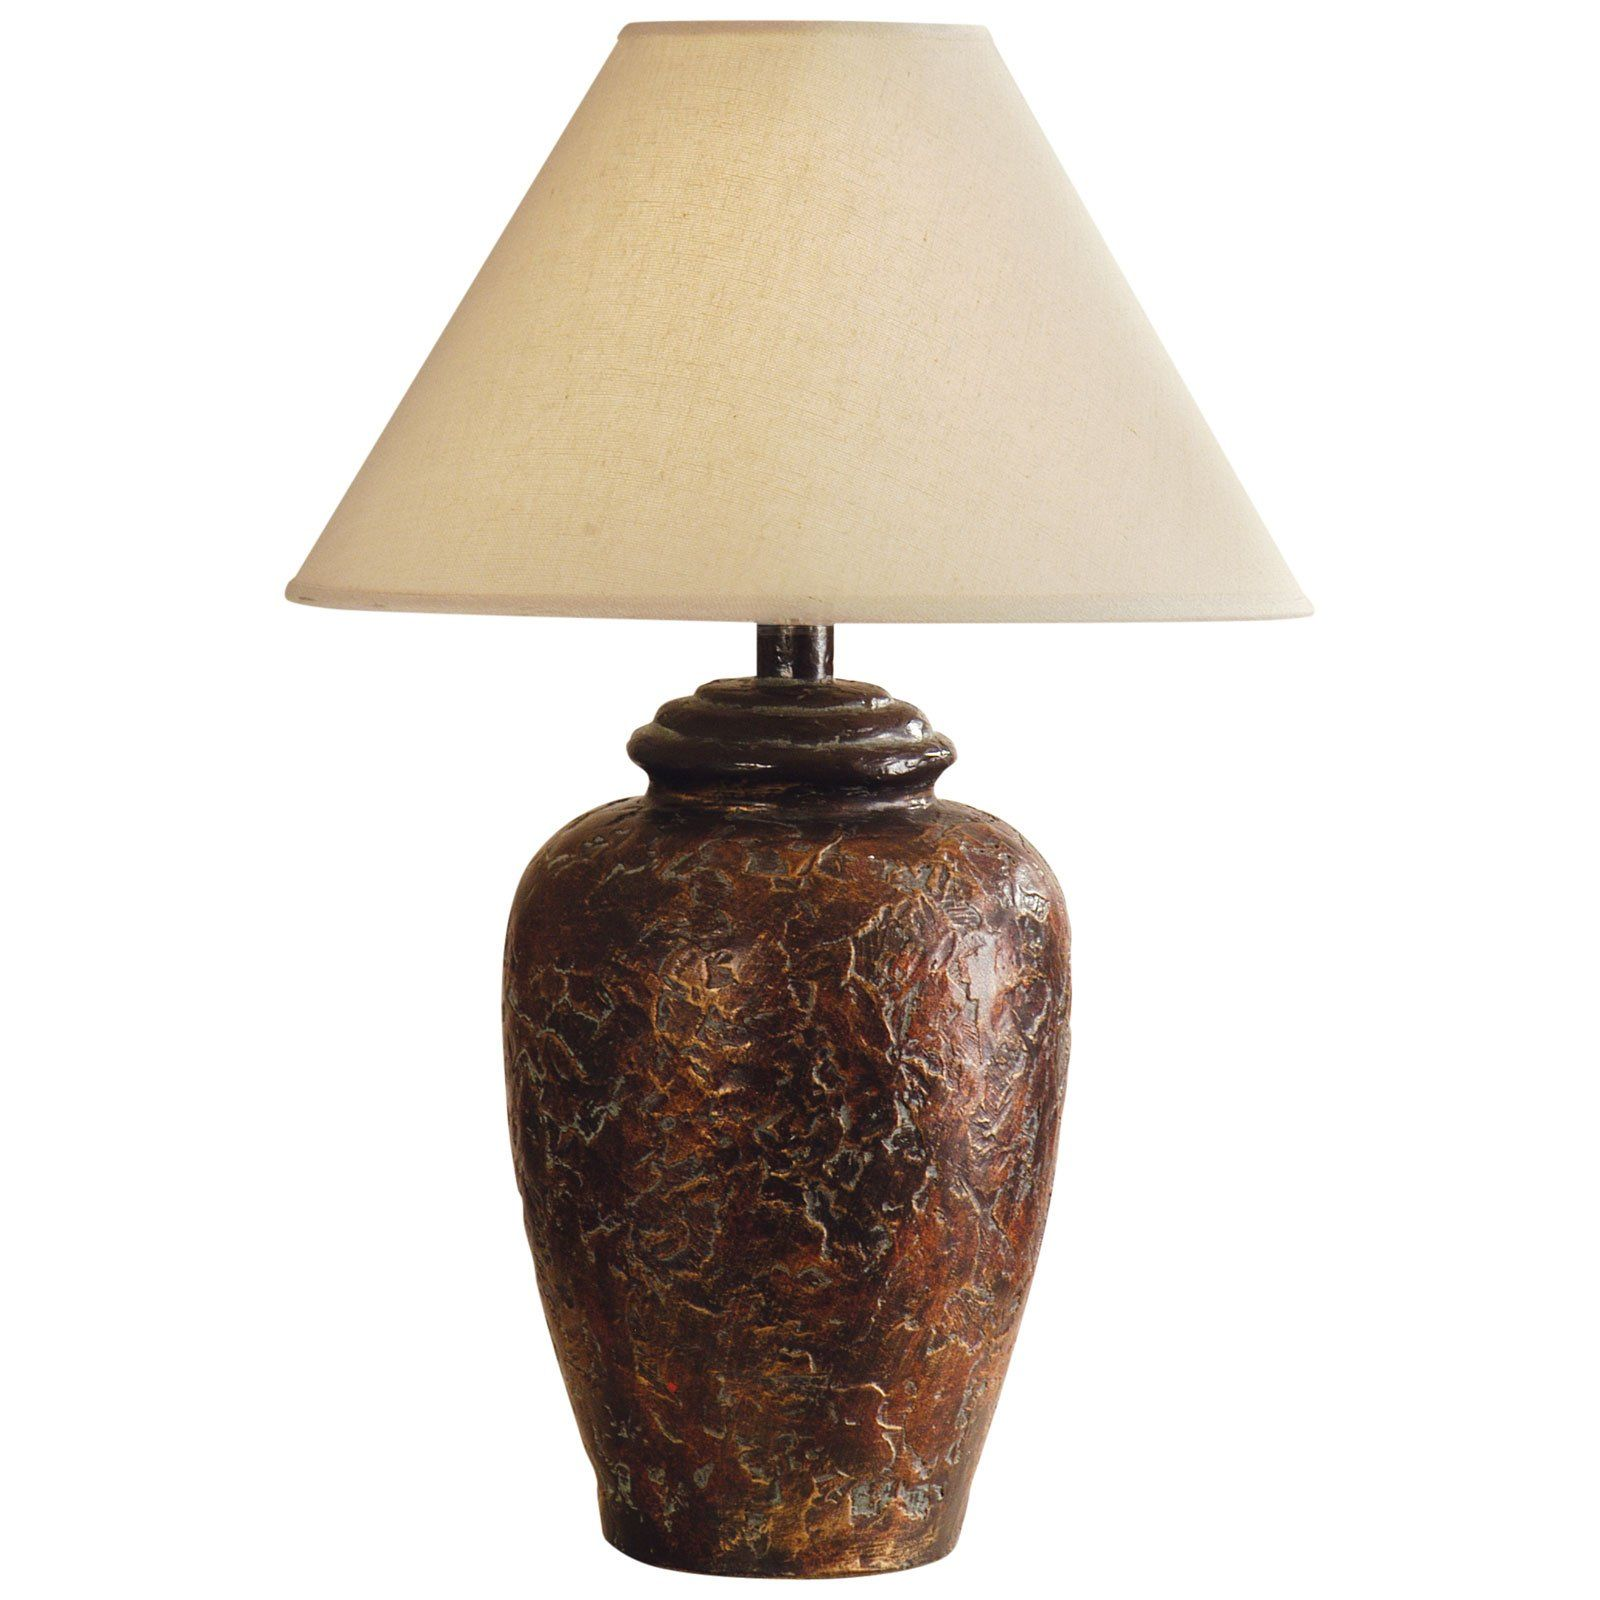 Table Lamps We Offer 1000 S Of On Trend To Help Favorite Solar Fusion Buffet Lamp Are